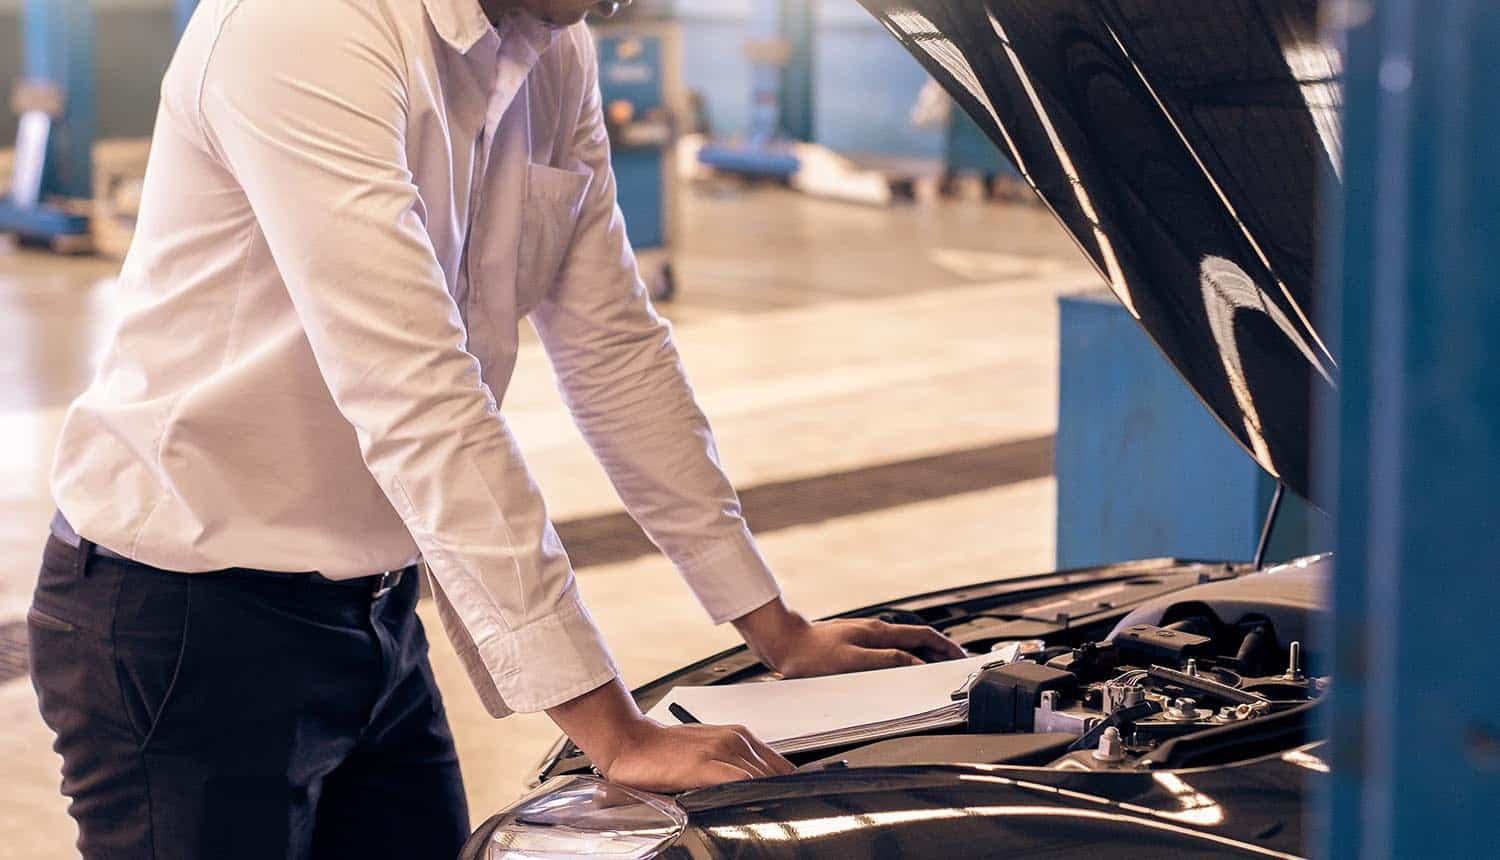 Man inspecting car showing need for vehicle cybersecurity